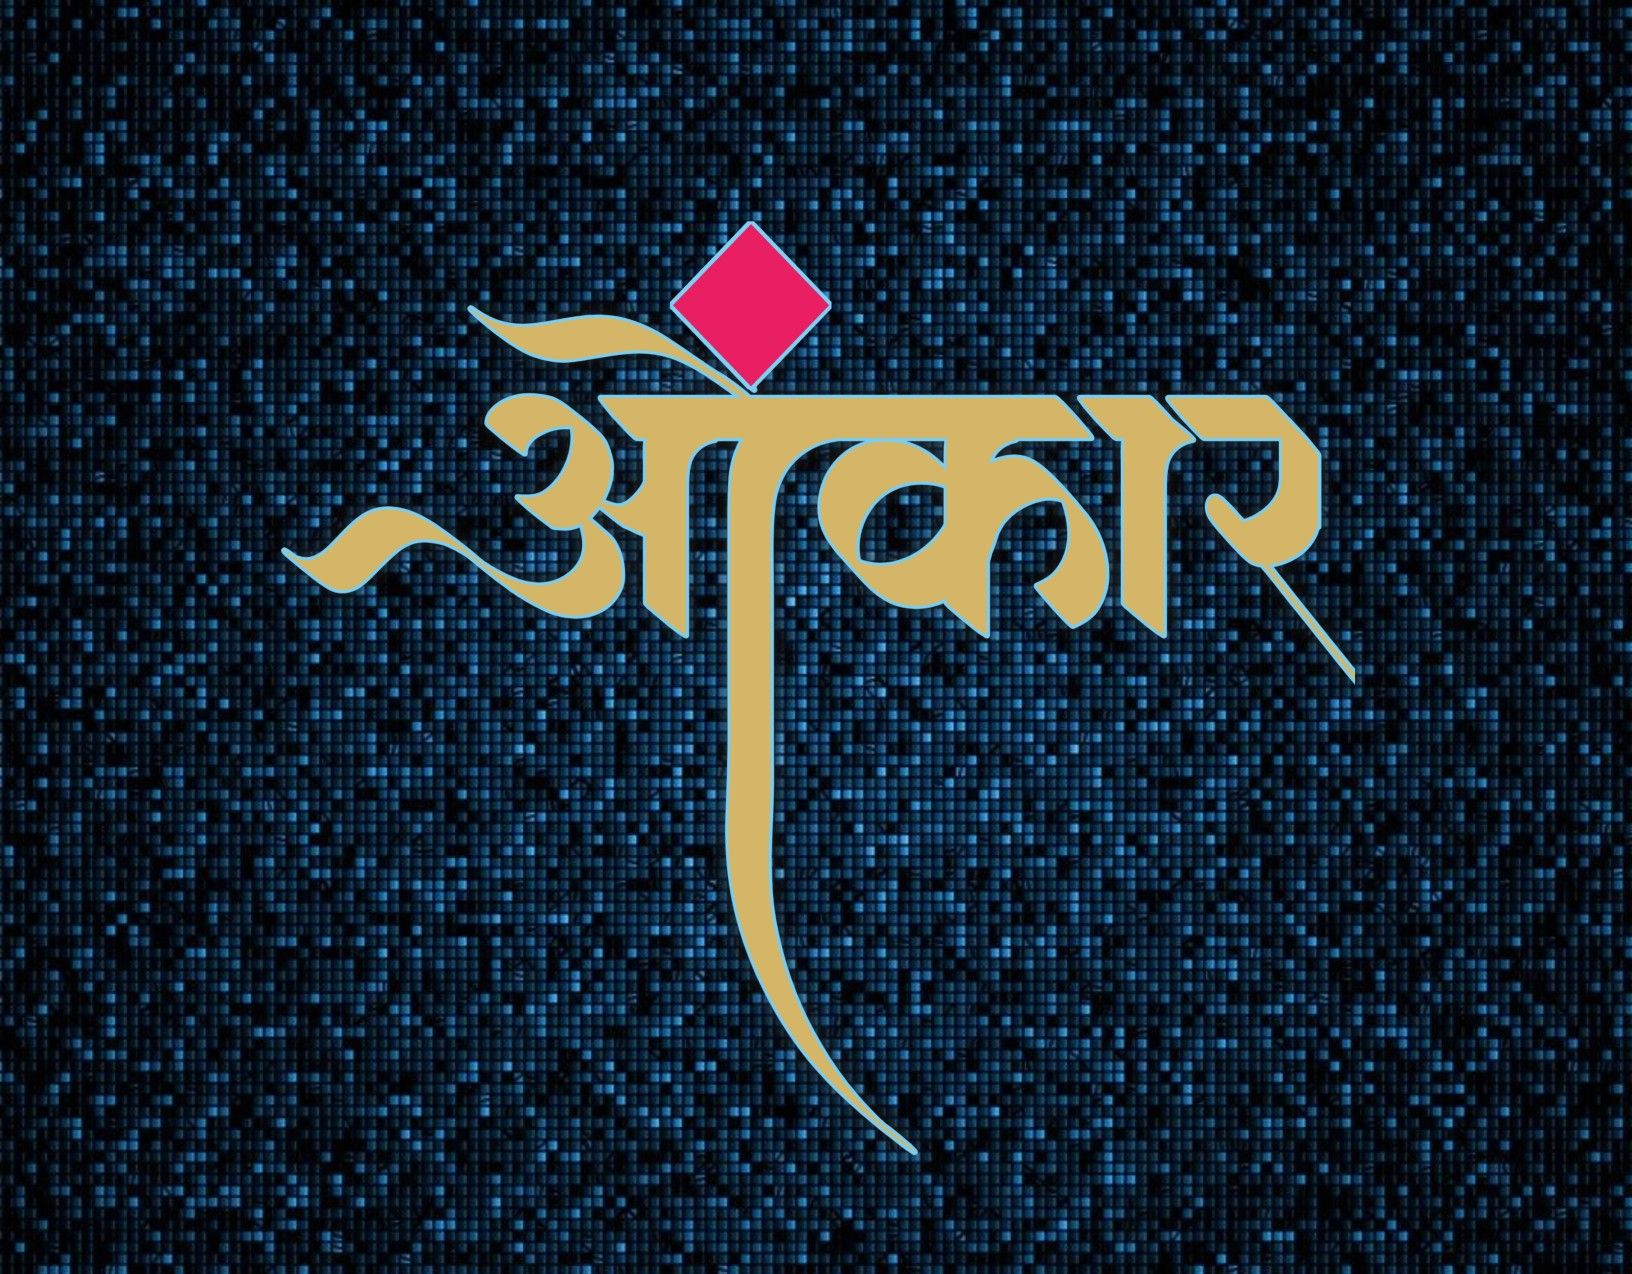 Omkar name Marathi Clligraphy Hindi Calligraphy in 2019.